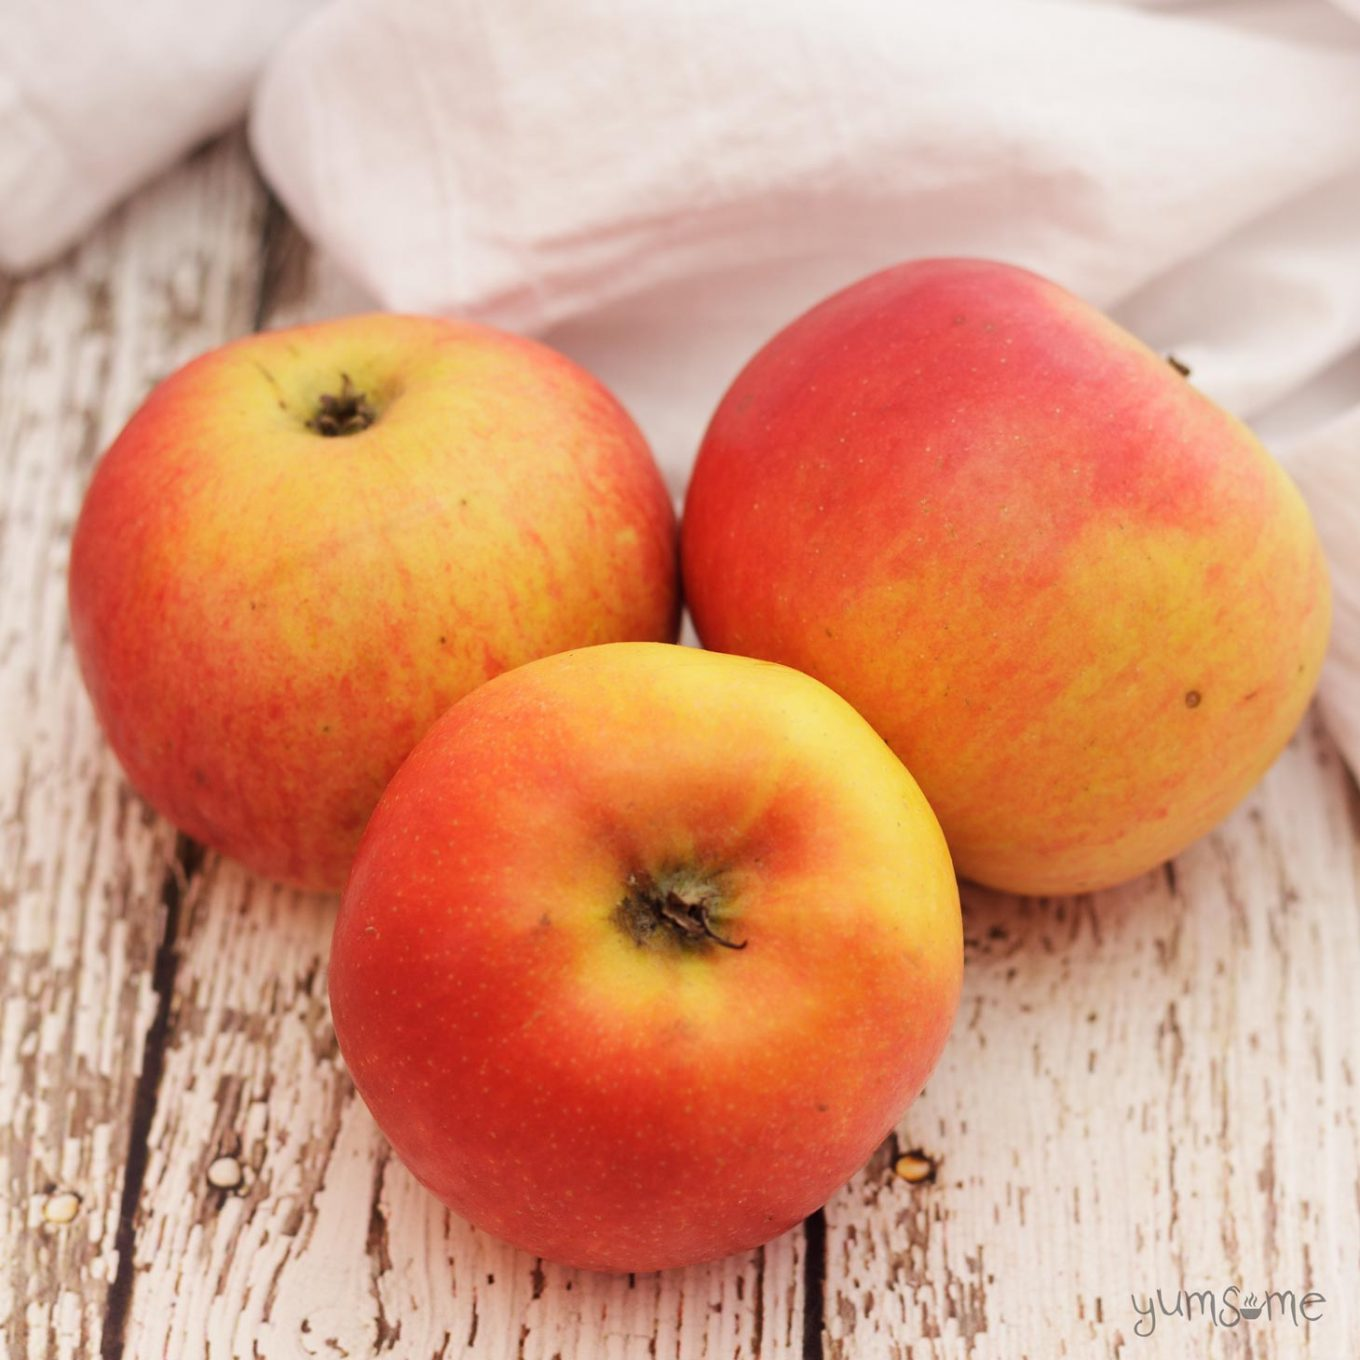 apples from Slovenia | yumsome.com